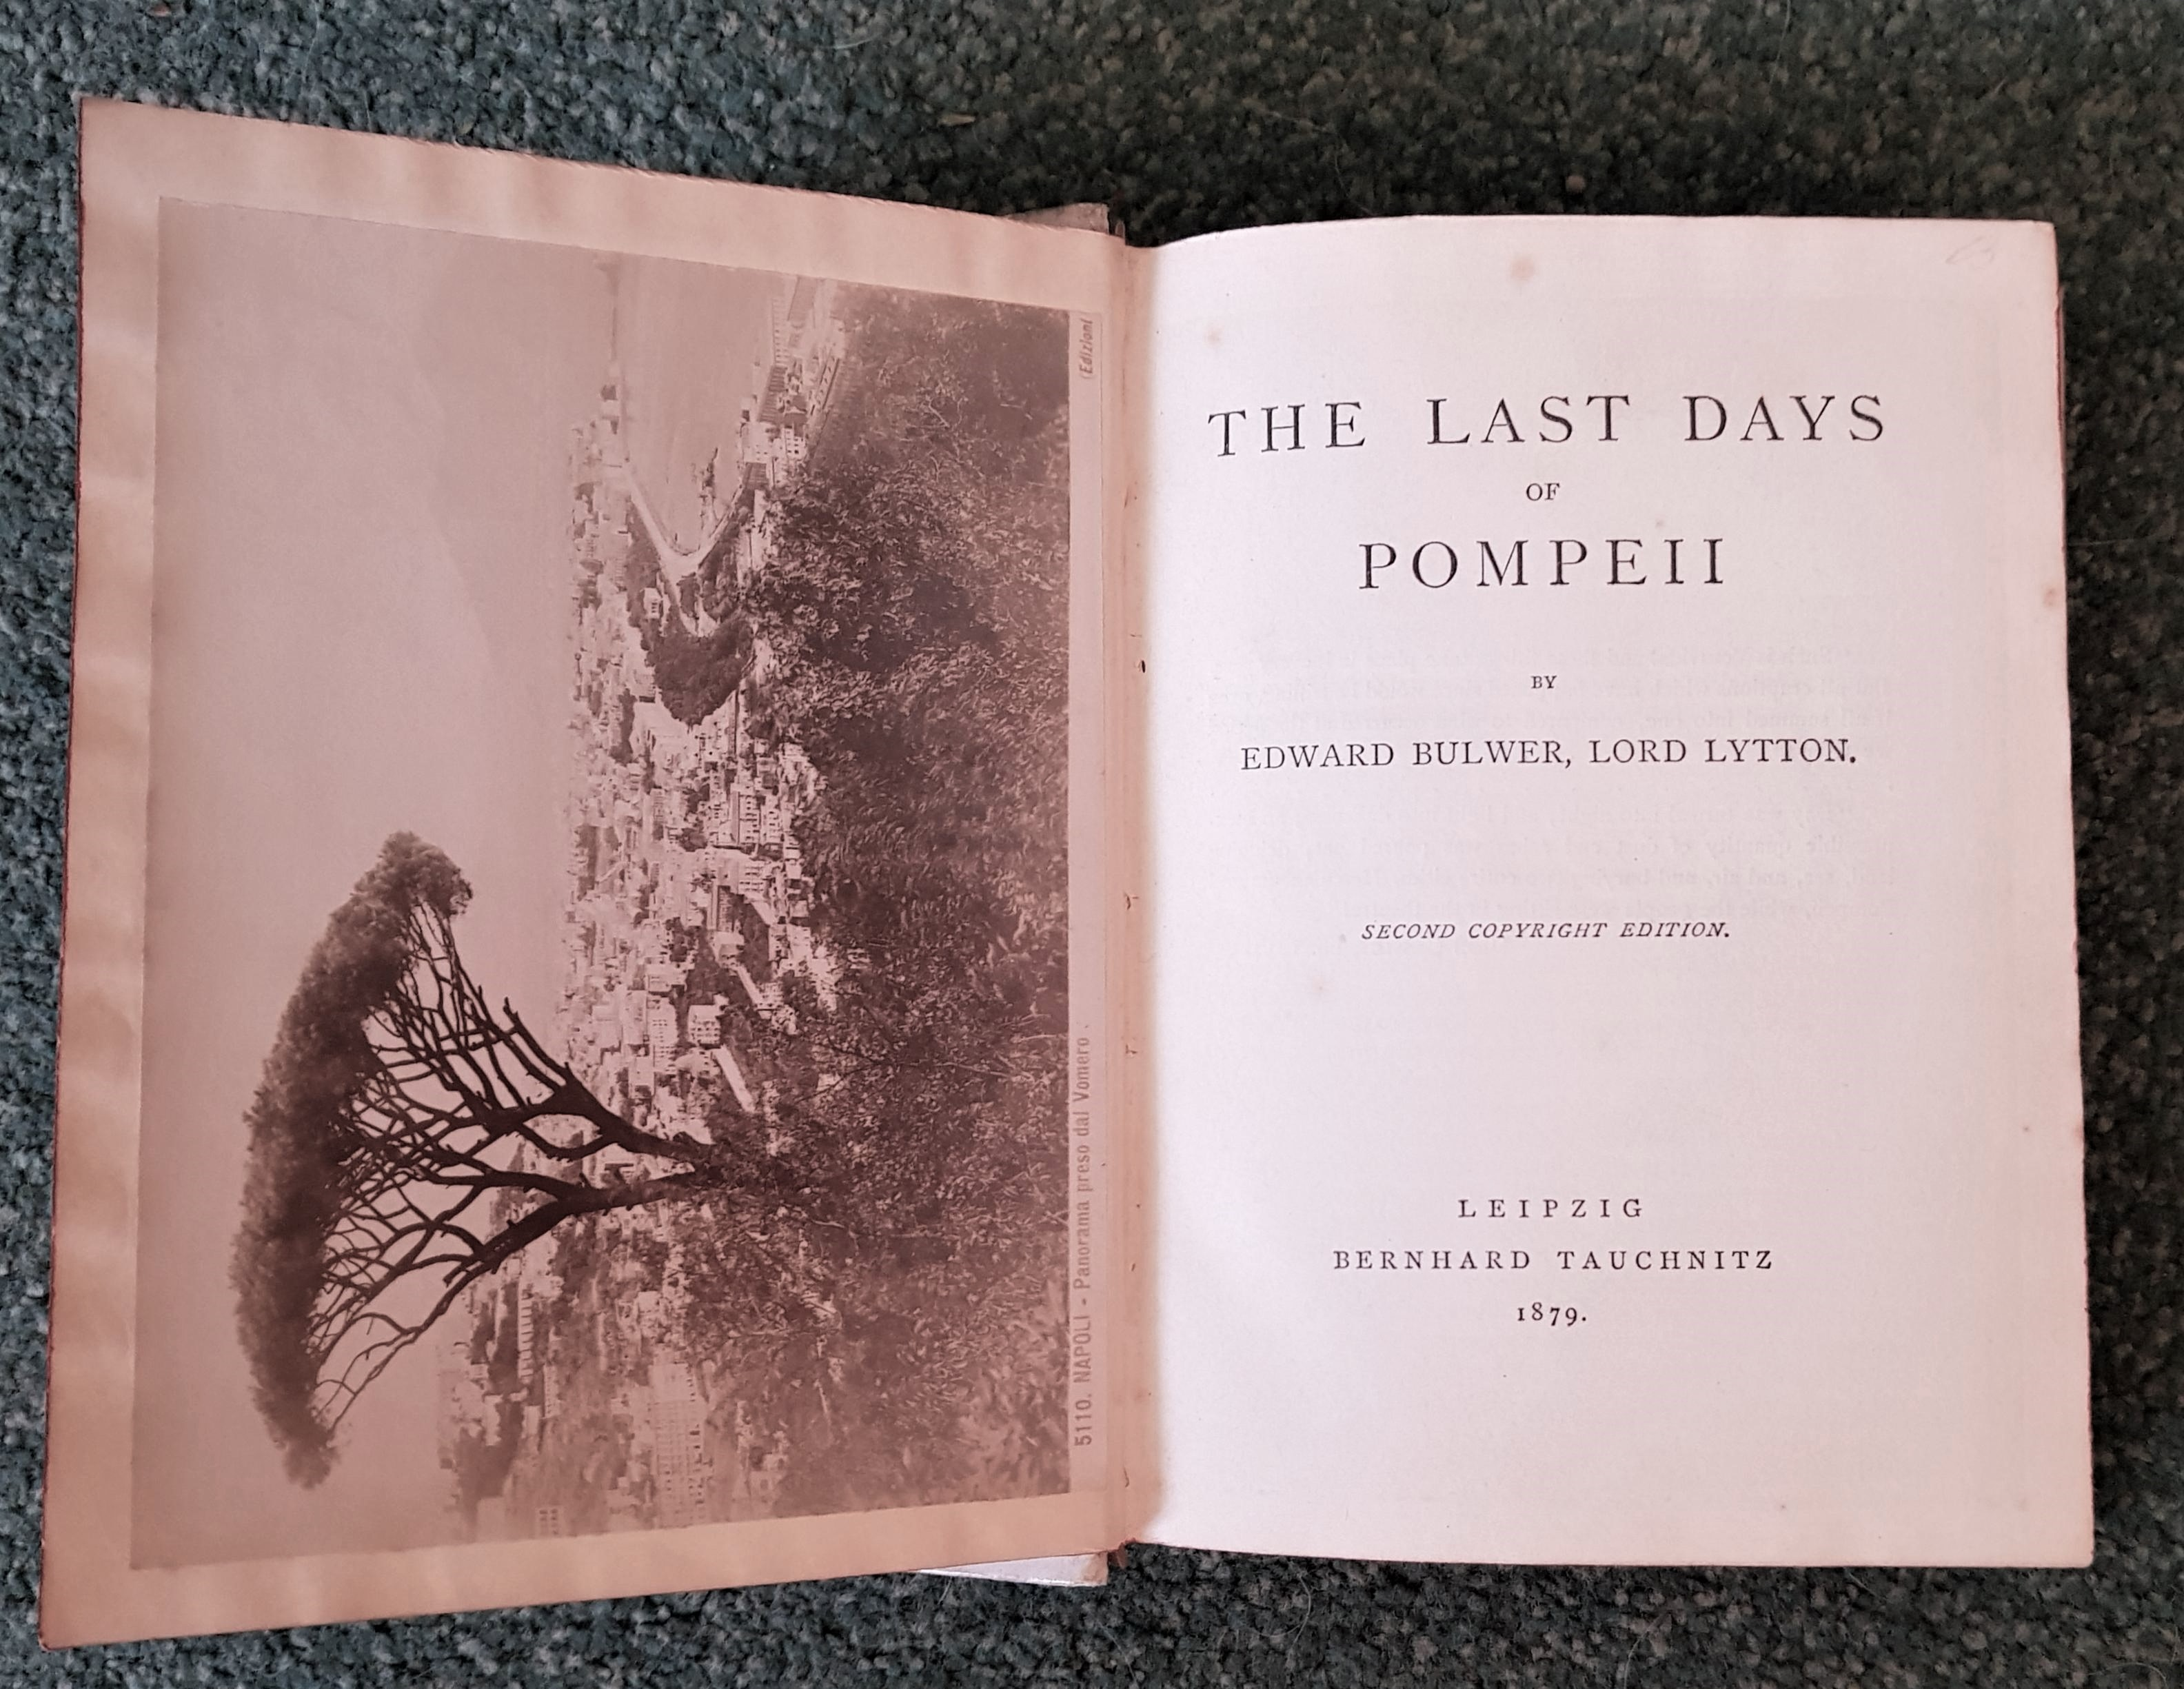 Image for The Last Days Of Pompeii. Second Copyright Edition.